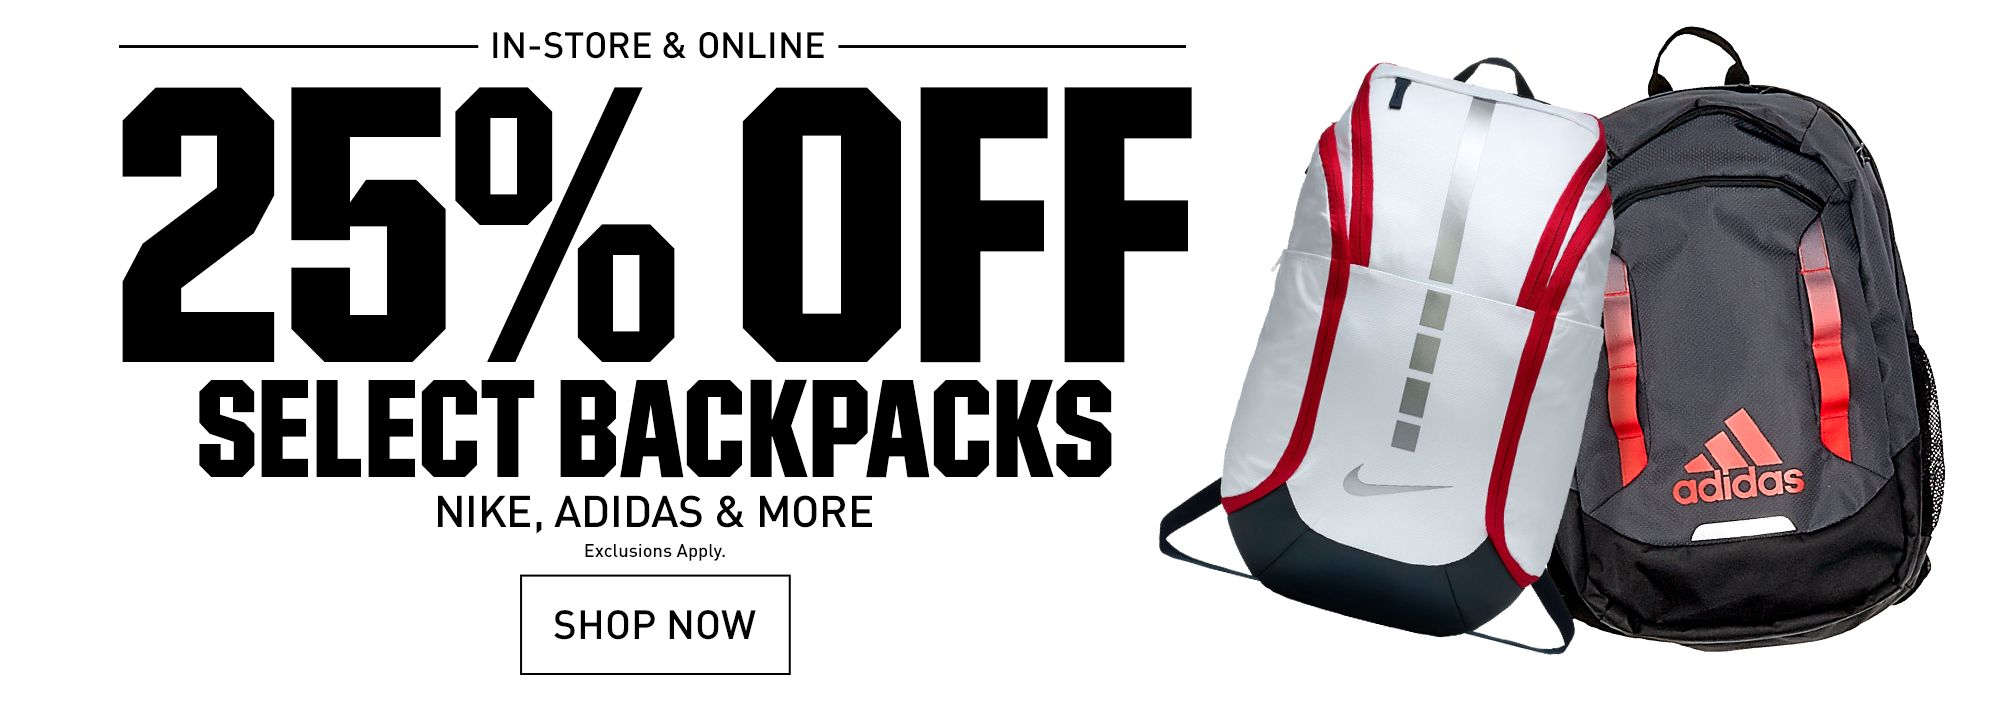 In-store & Online 25% Off Select Backpacks Nike, adidas & More | Exclusions Apply. | Shop Now